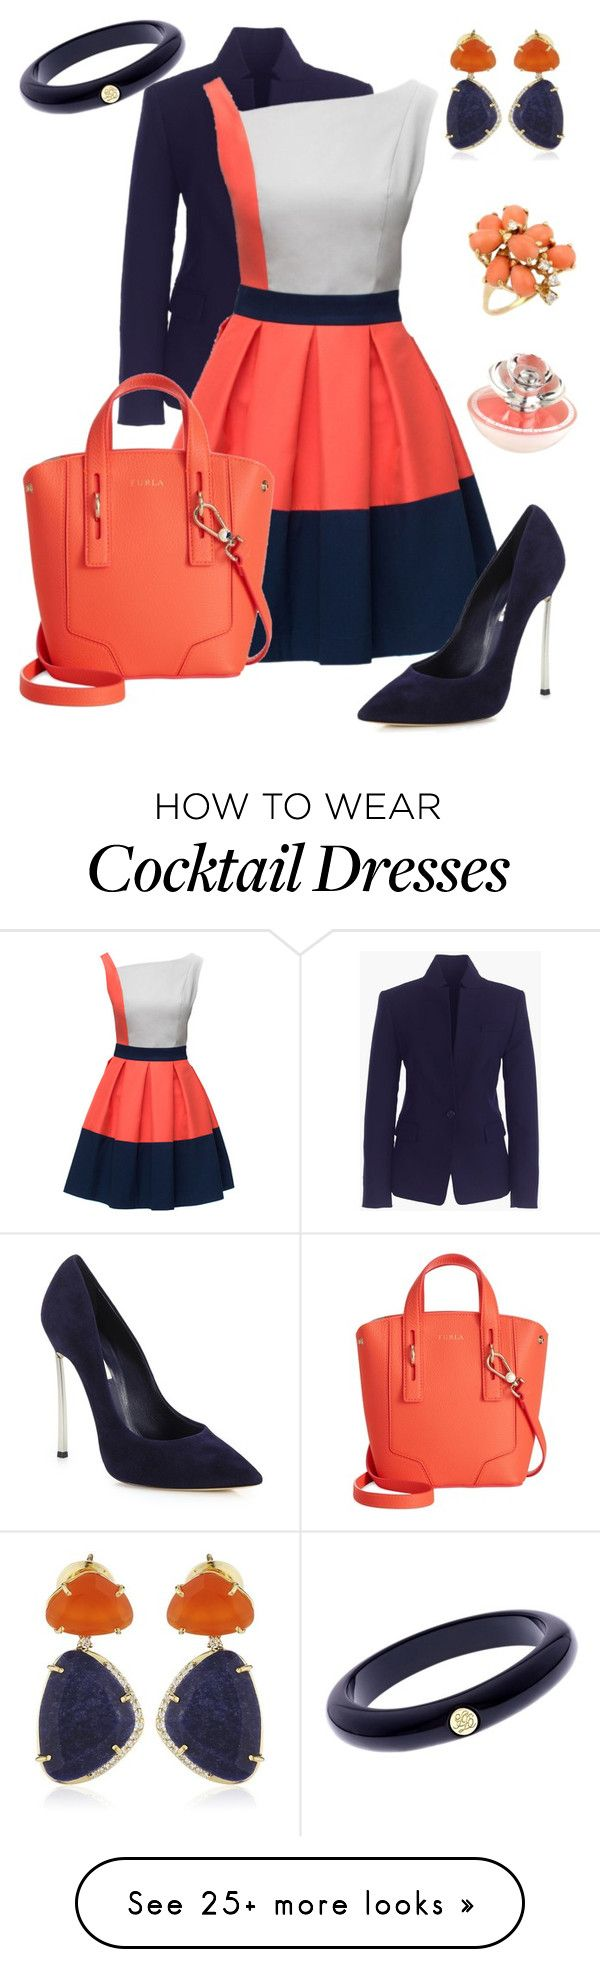 """Classify Designer Store #1"" by amimareelynn on Polyvore featuring moda, J.Crew, Lattori, Casadei, Furla, Ted Baker, Vianna B.R.A.S.I.L i Guerlain"